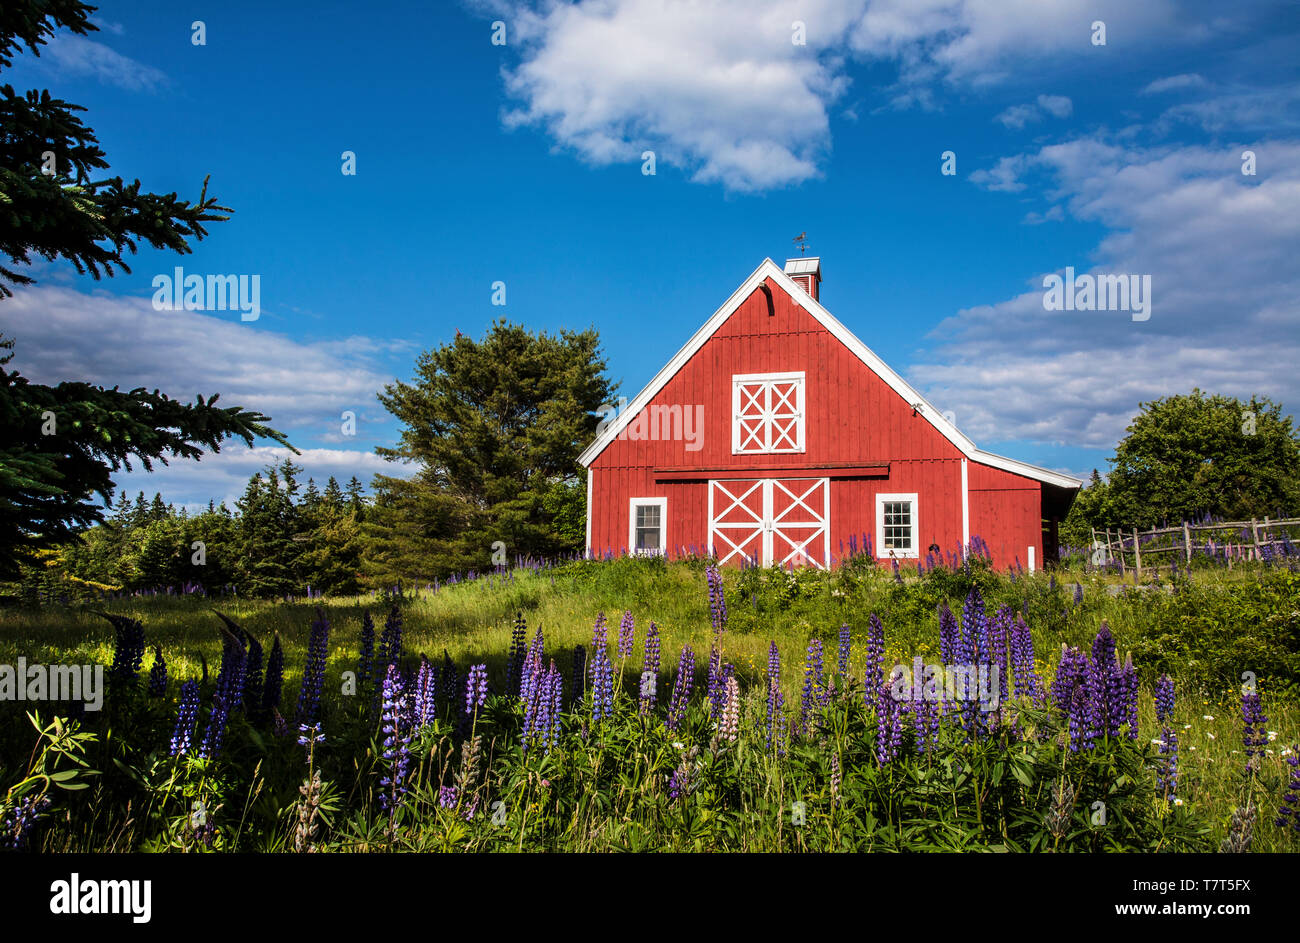 Red barn and lupine flowers, blue sky, Acadia National Park, Maine, USA,   FS 11.46 MB  300ppi - Stock Image